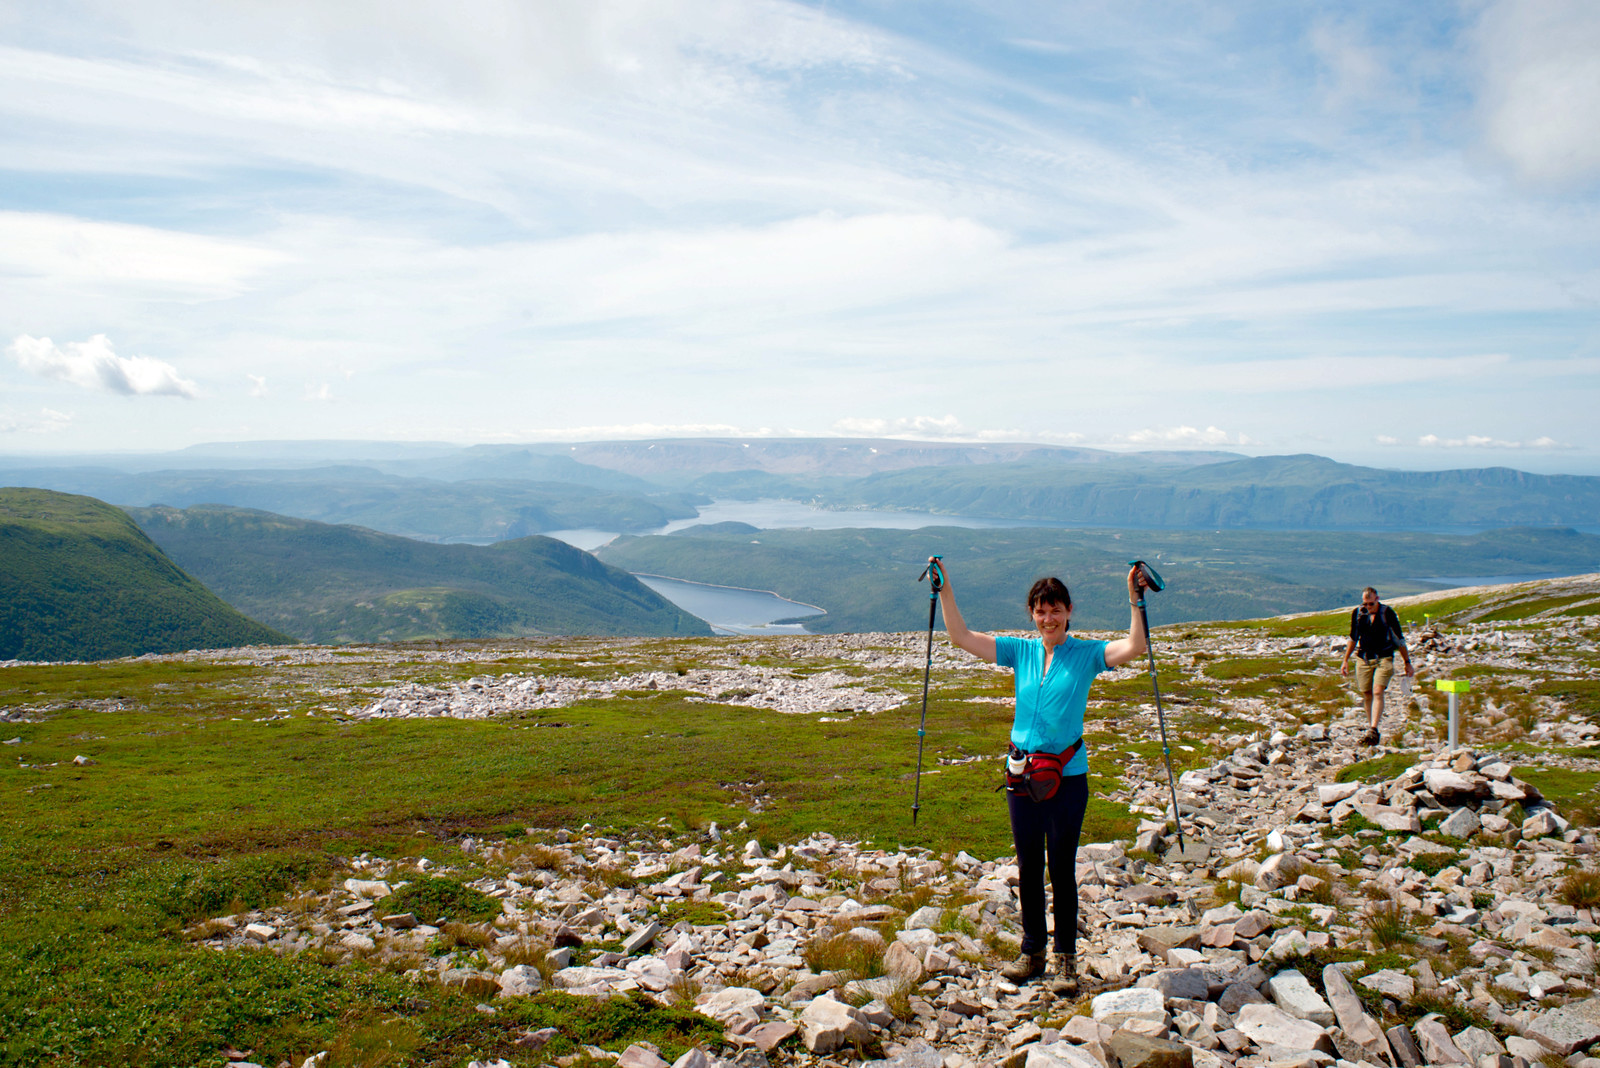 Canada: Newfoundland Viking Trail Hike